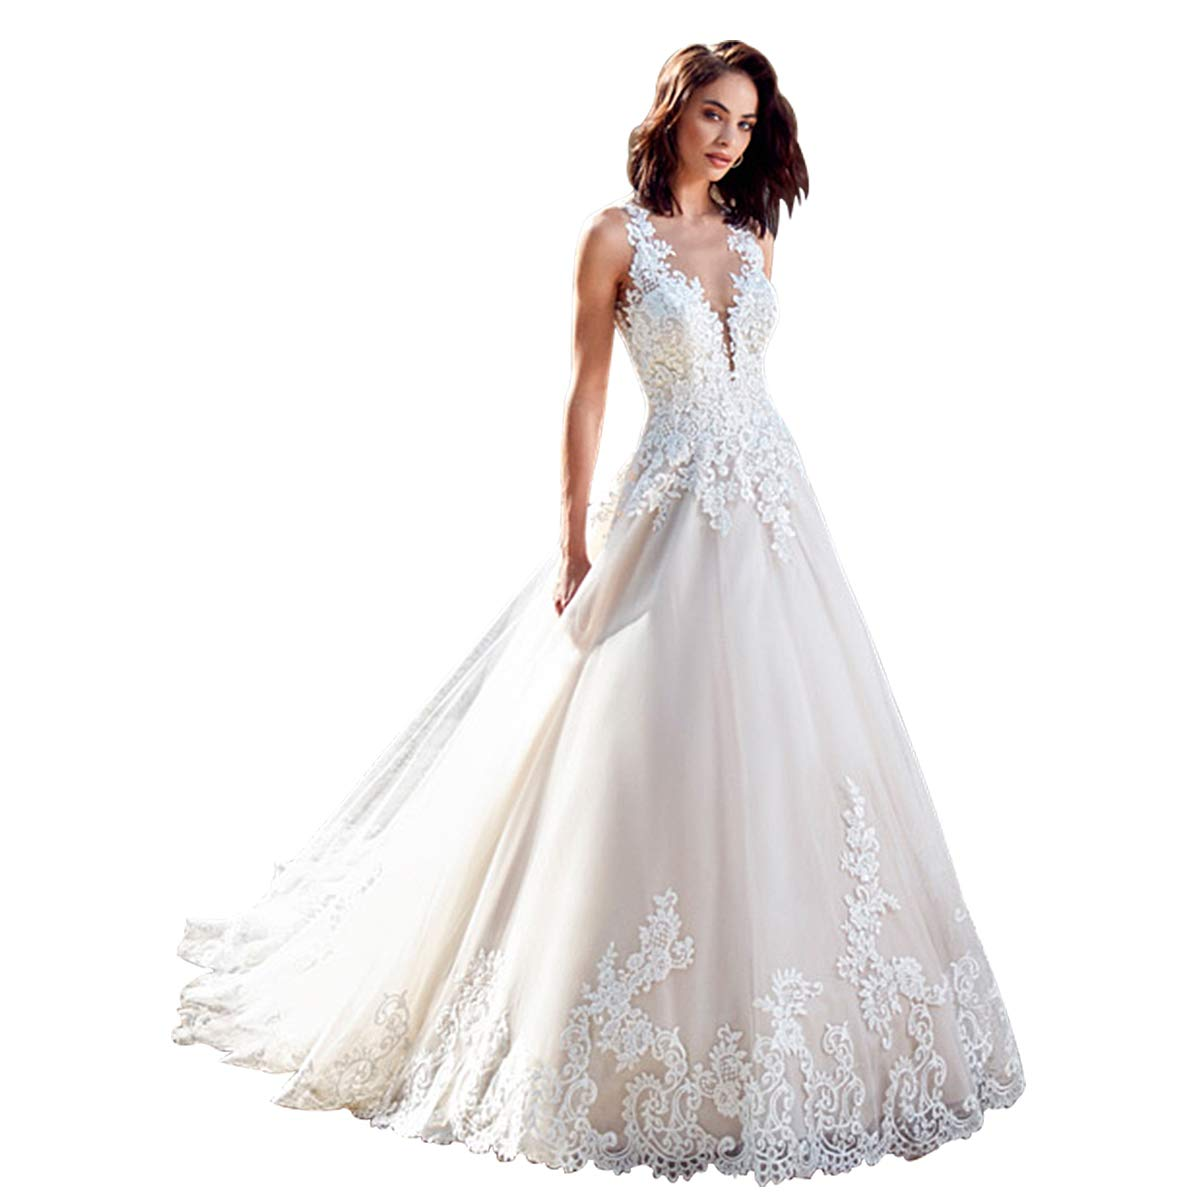 Mermaid Wedding Dresses For Bride Plus Size Casual Country Wedding